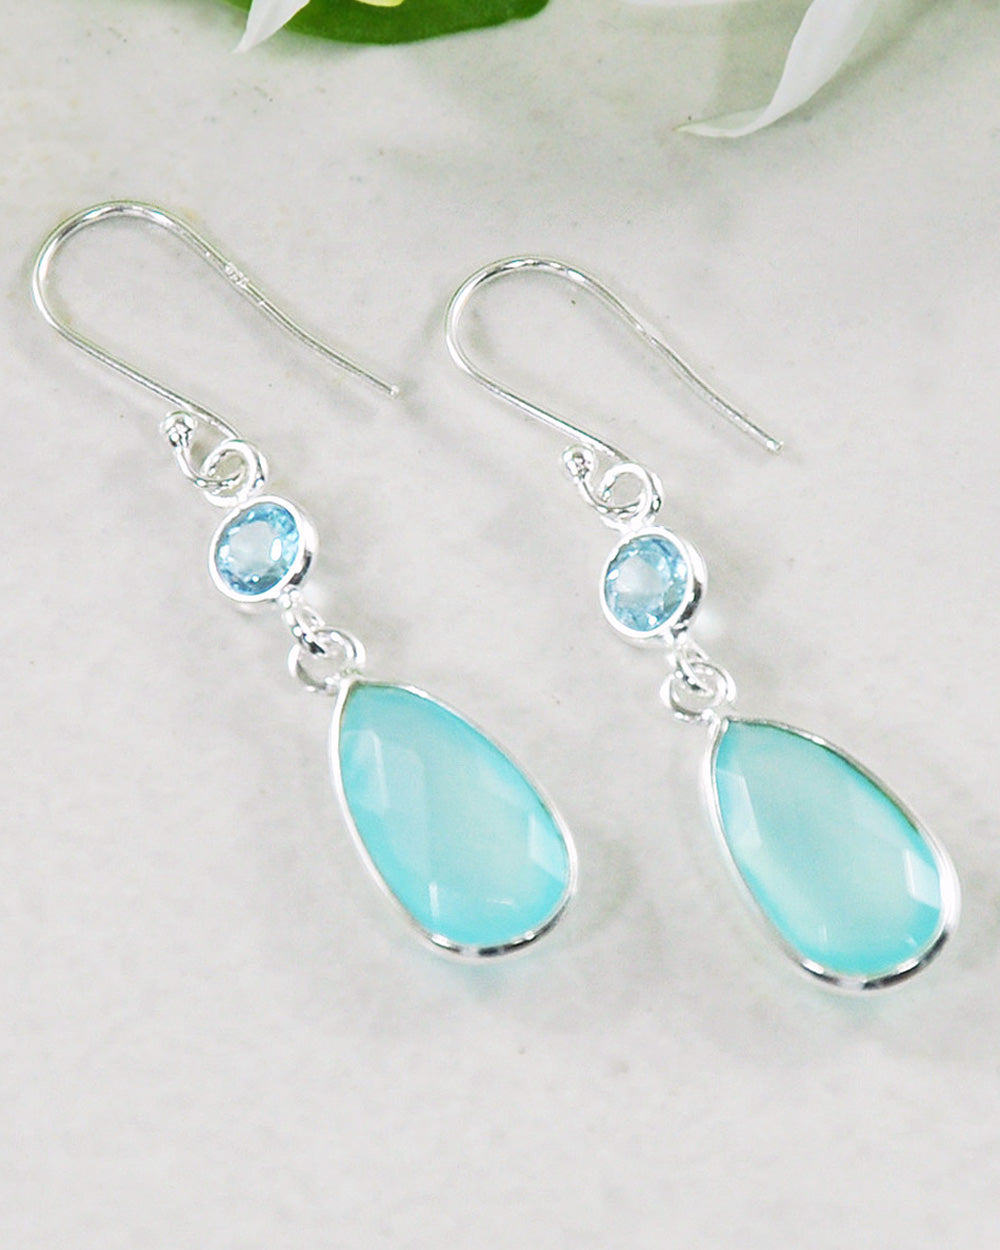 Renewed Self Peruvian Opal Sterling Silver Earrings